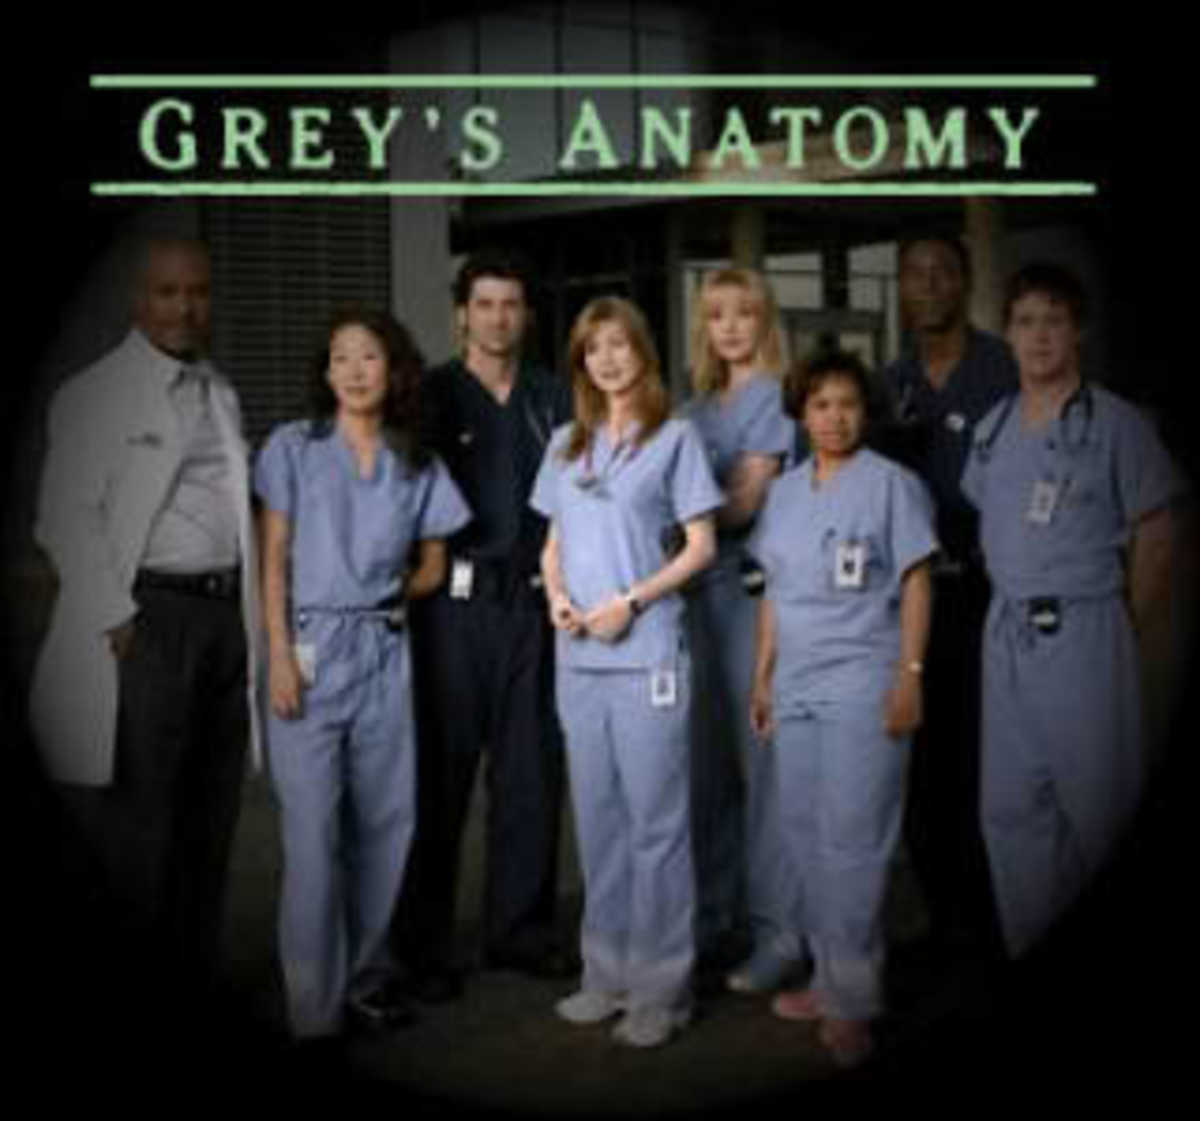 greys-anatomy-season-5-episode-12